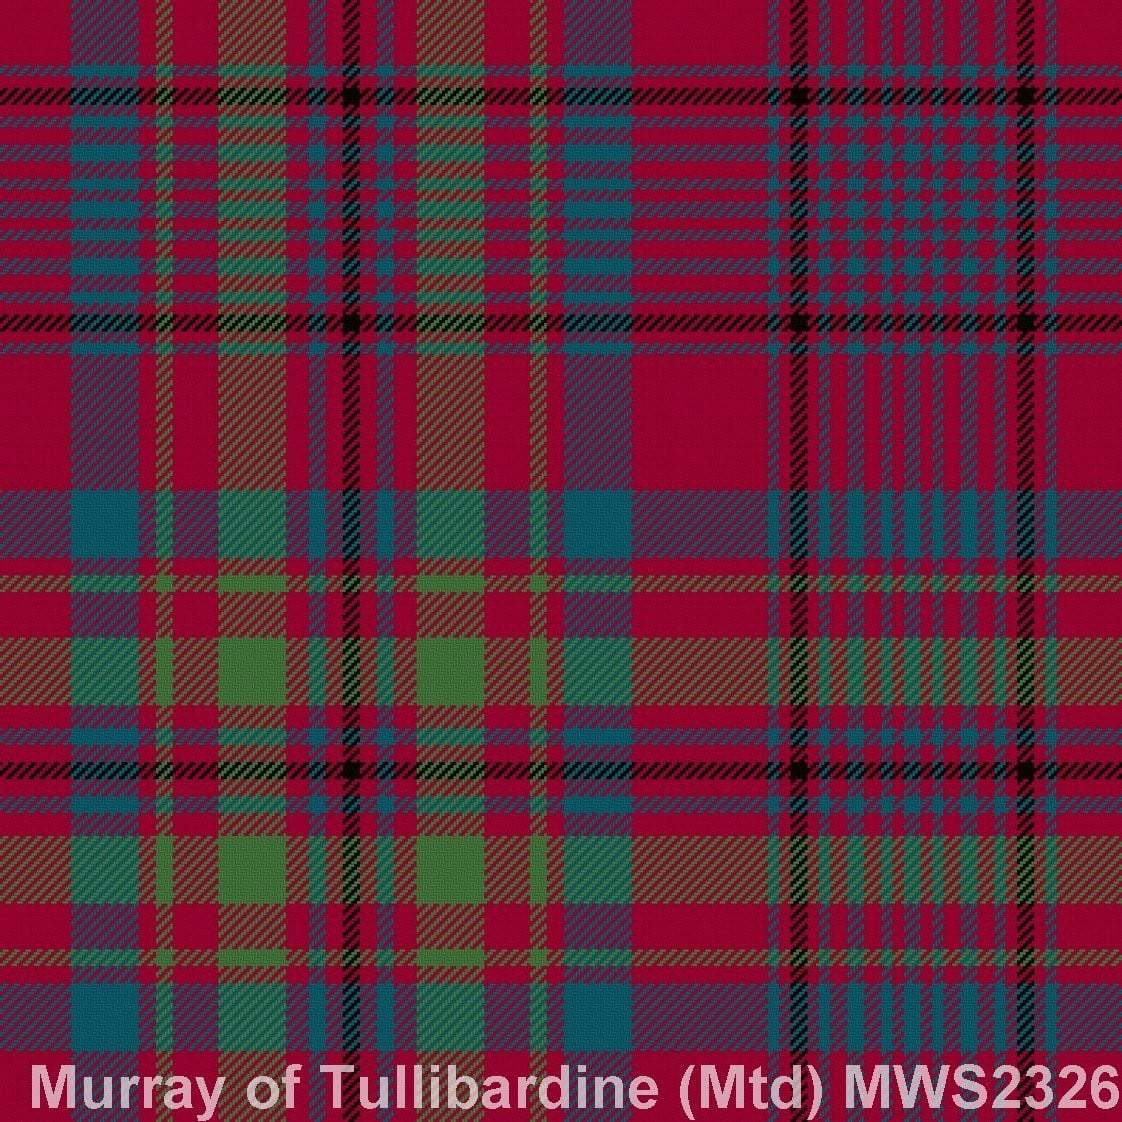 Murray of Tulliebardine Muted